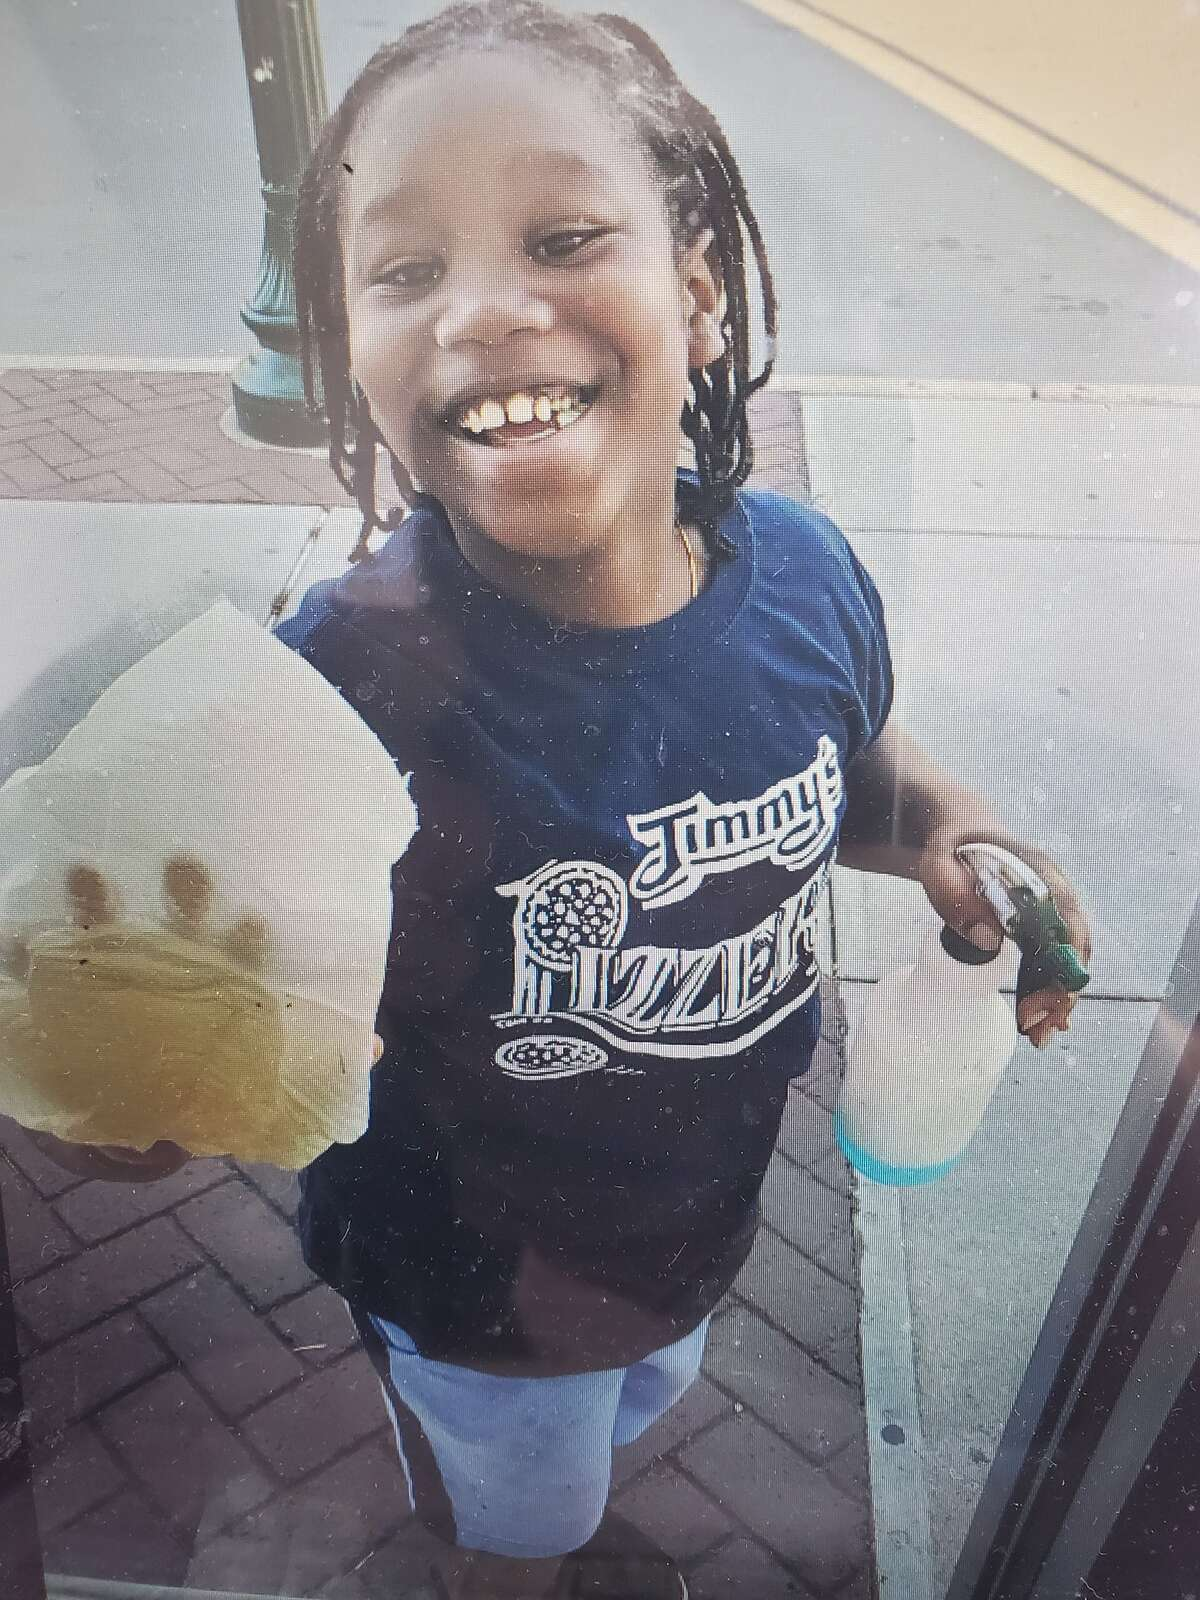 Ayshawn Davis, 11, was shot and killed in a drive-by shooting in Troy late Sunday, Sept. 14, 2020. This photograph was taken by Tony Buchanan, owner of Jimmy's Pizzeria and Restaurant, where the child did odd jobs for him like cleaning the dining room and washing windows.